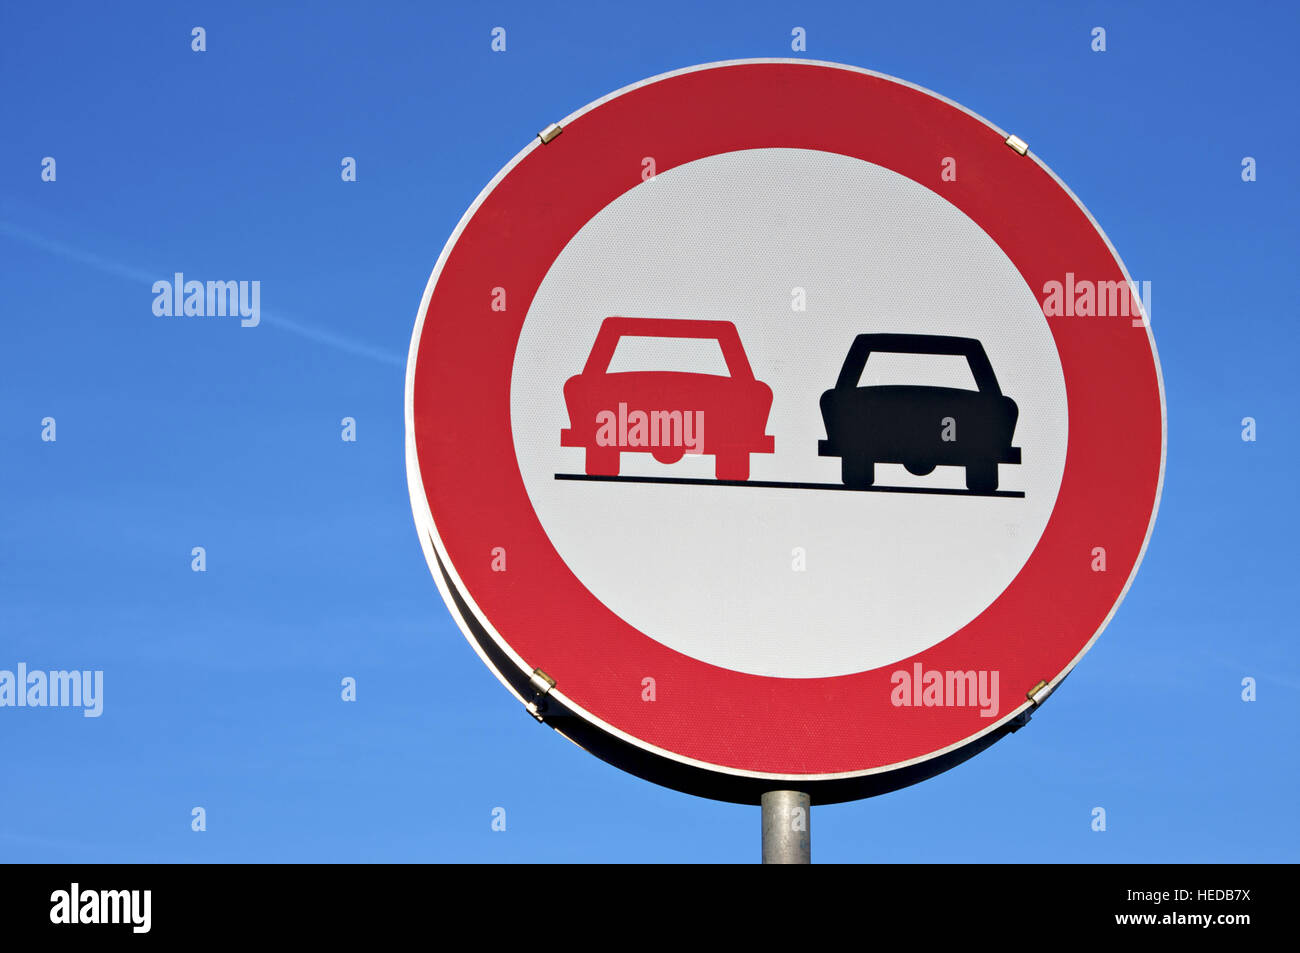 Traffic sign: Do not overtake, no passing - Stock Image